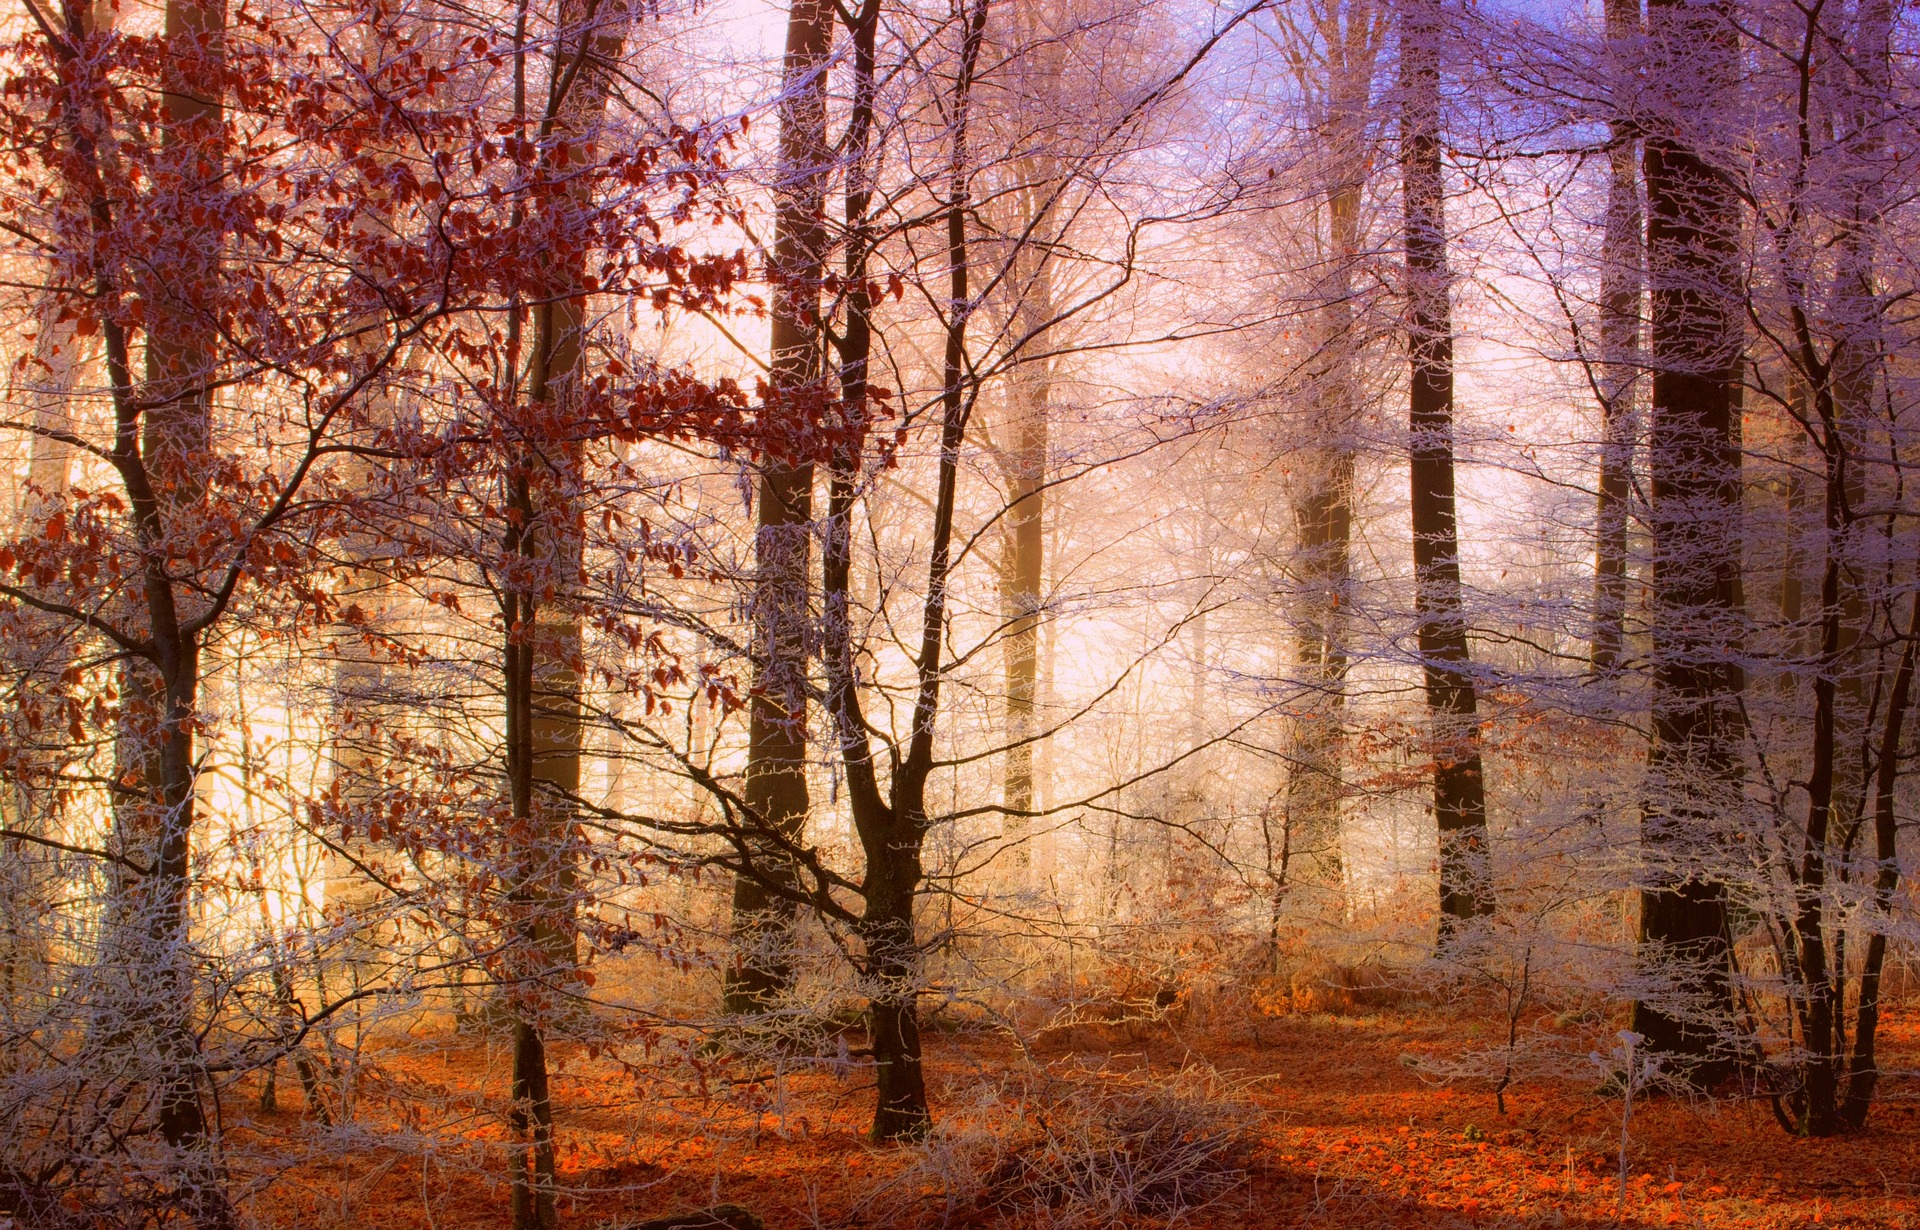 forest-Fatherheart - France